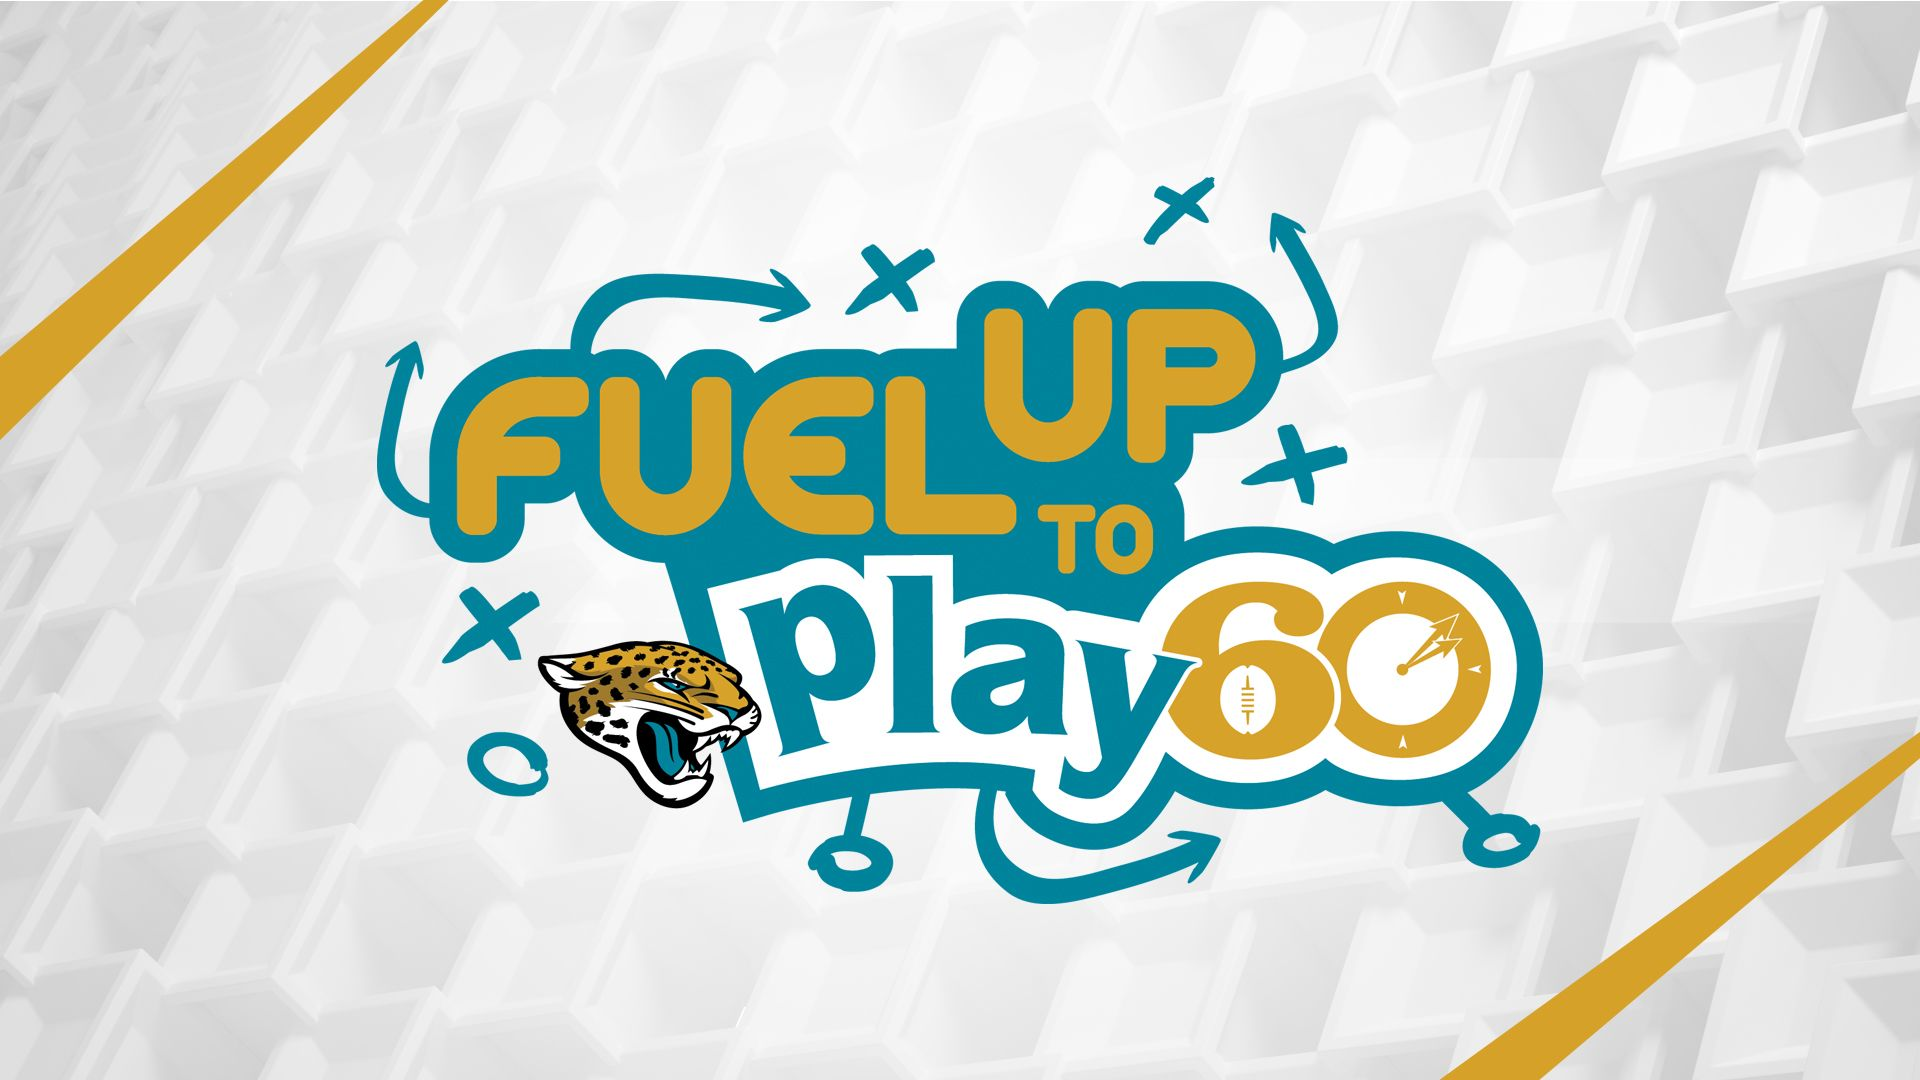 Jaguars Fuel Up to Play 60